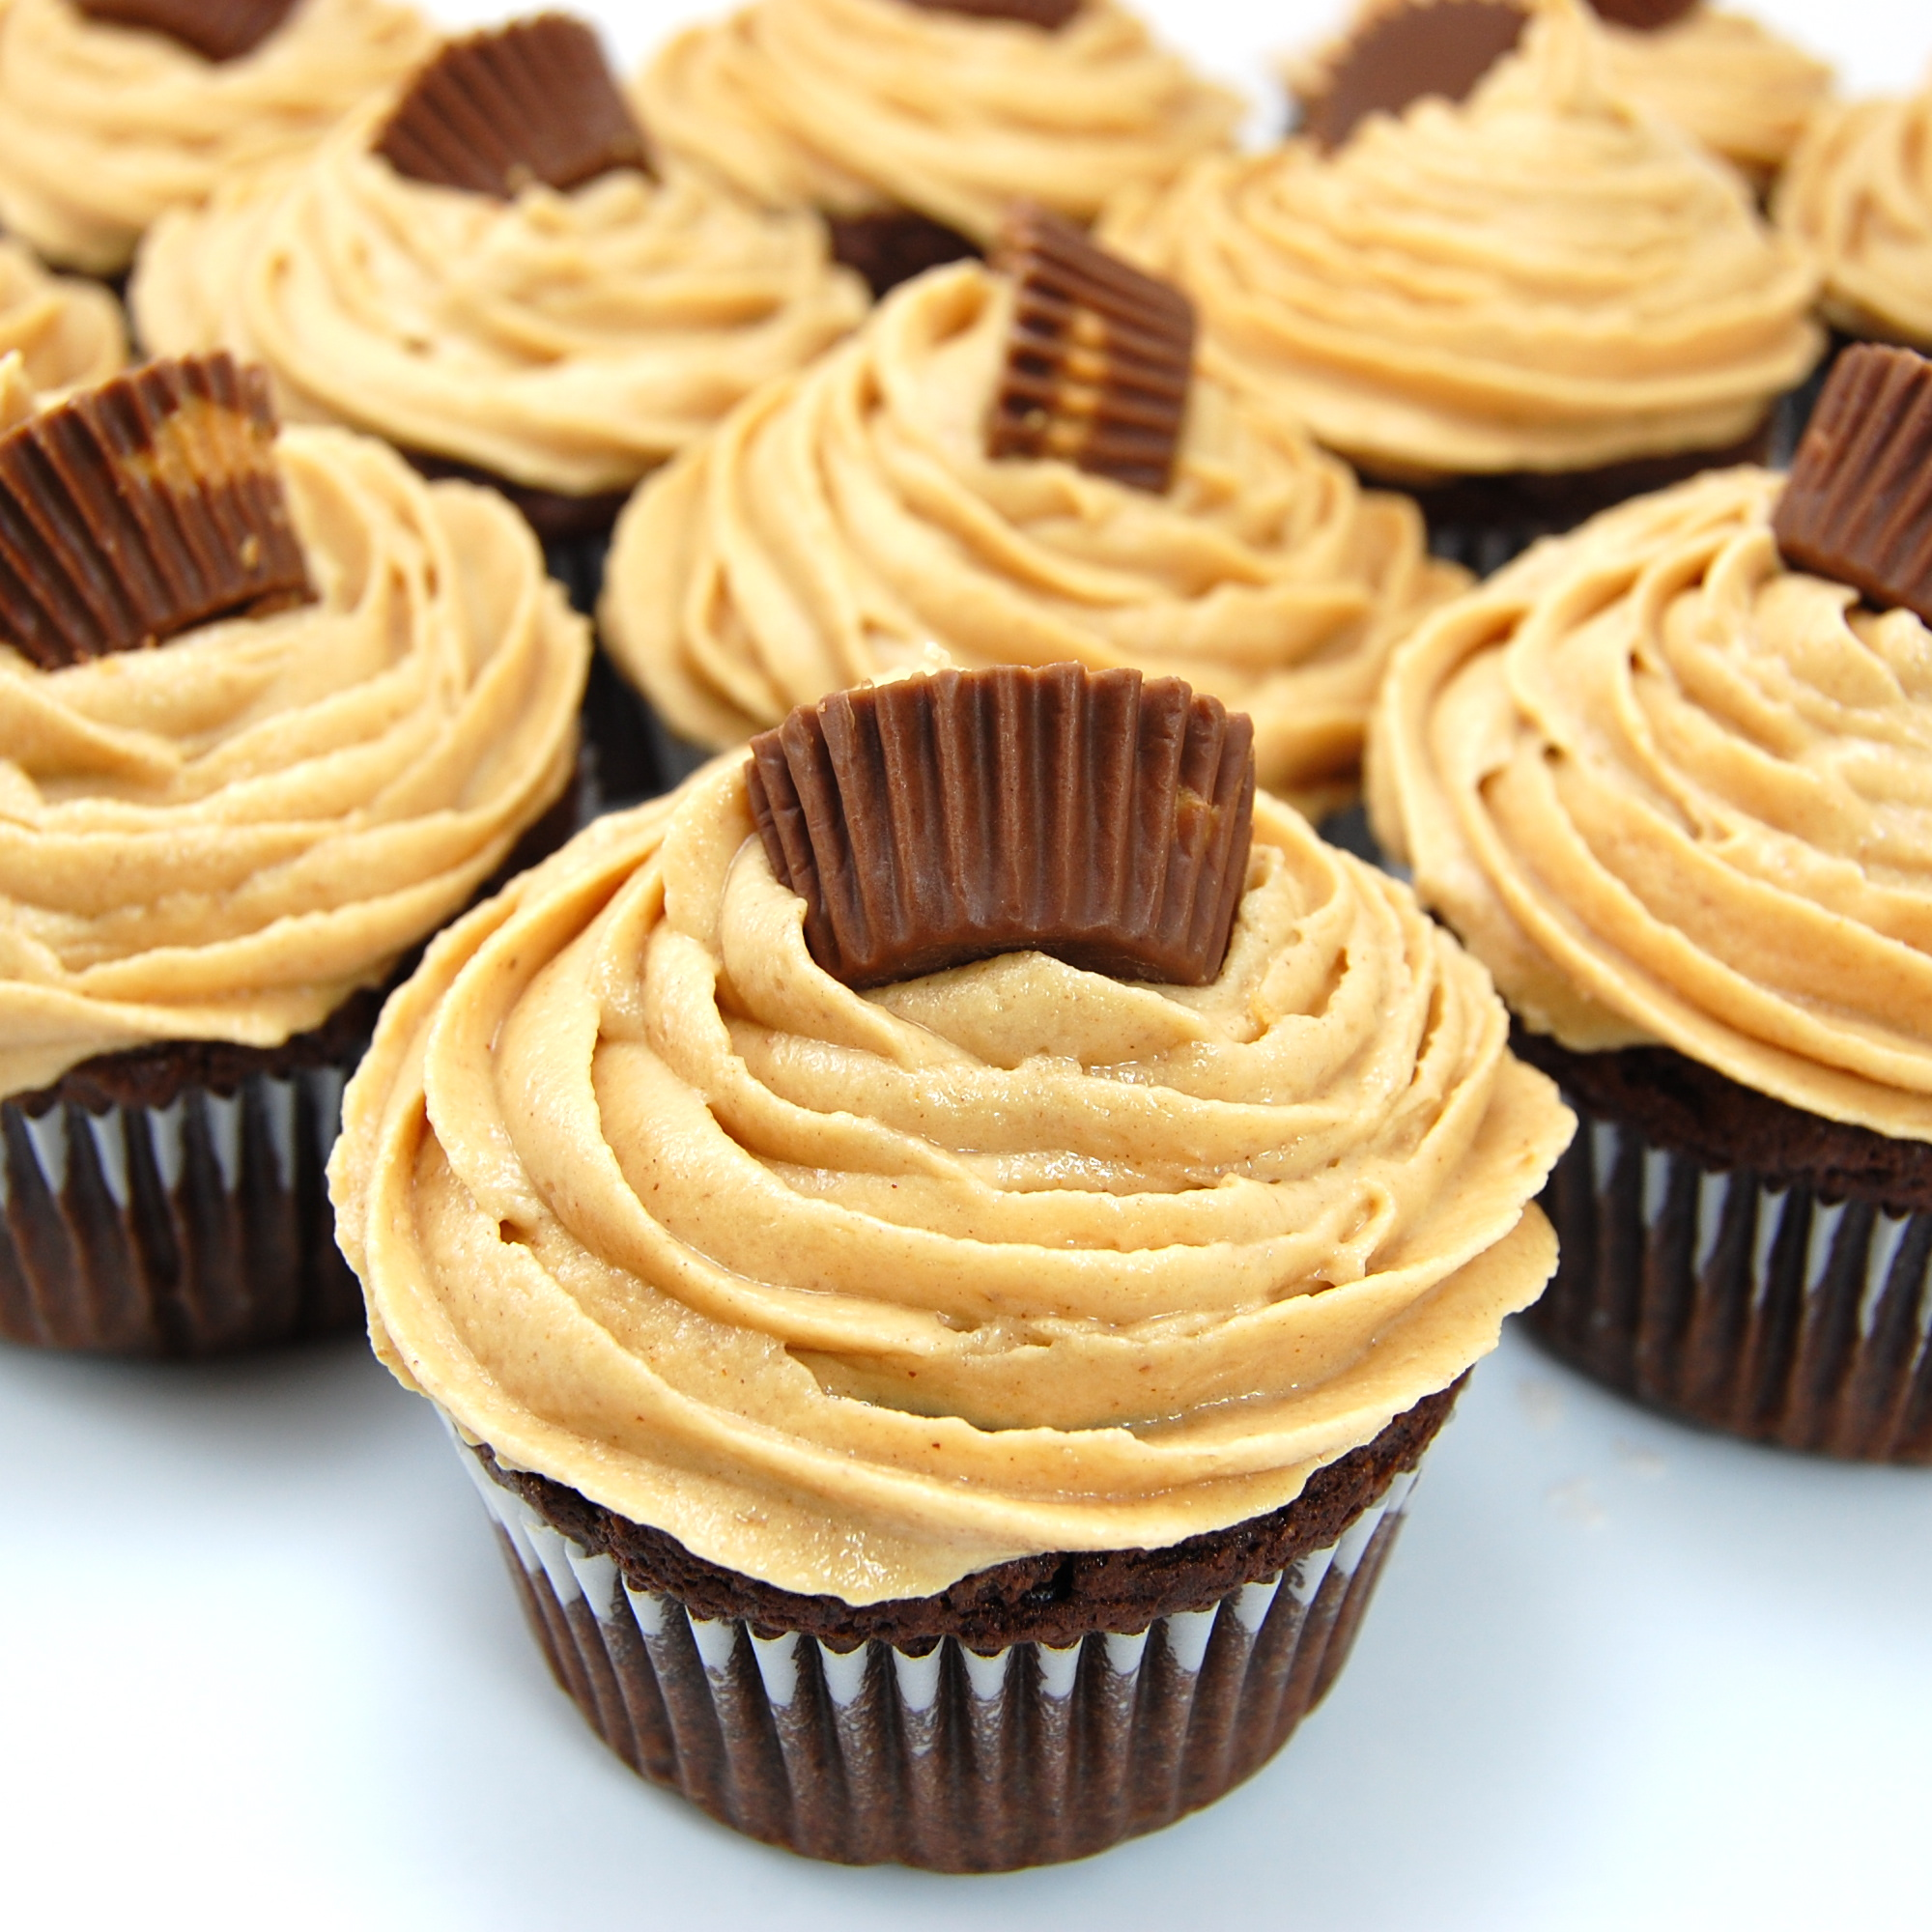 Peanut Butter Chocolate Icing Cupcake Recipe